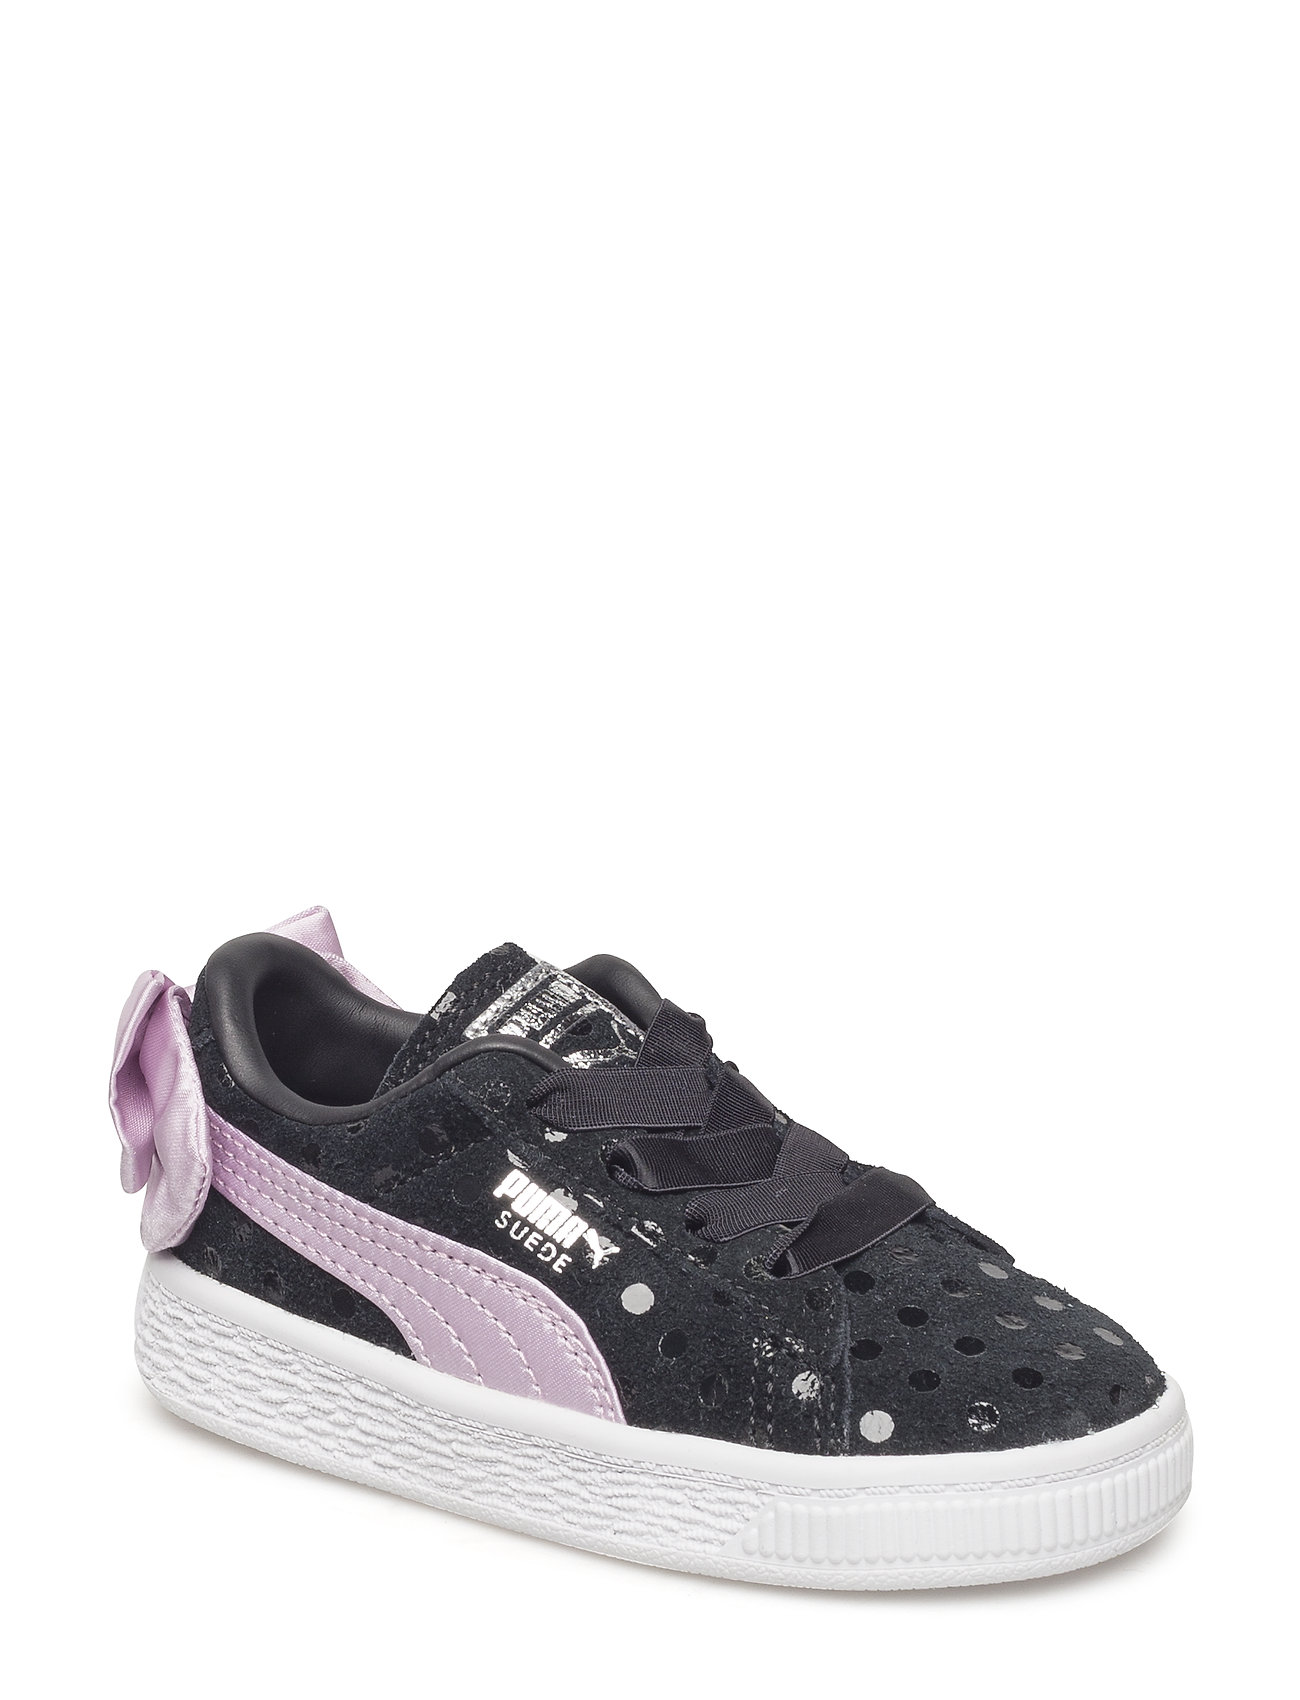 Suede Bow Dots Ac Inf Sneakers Sko Sort PUMA